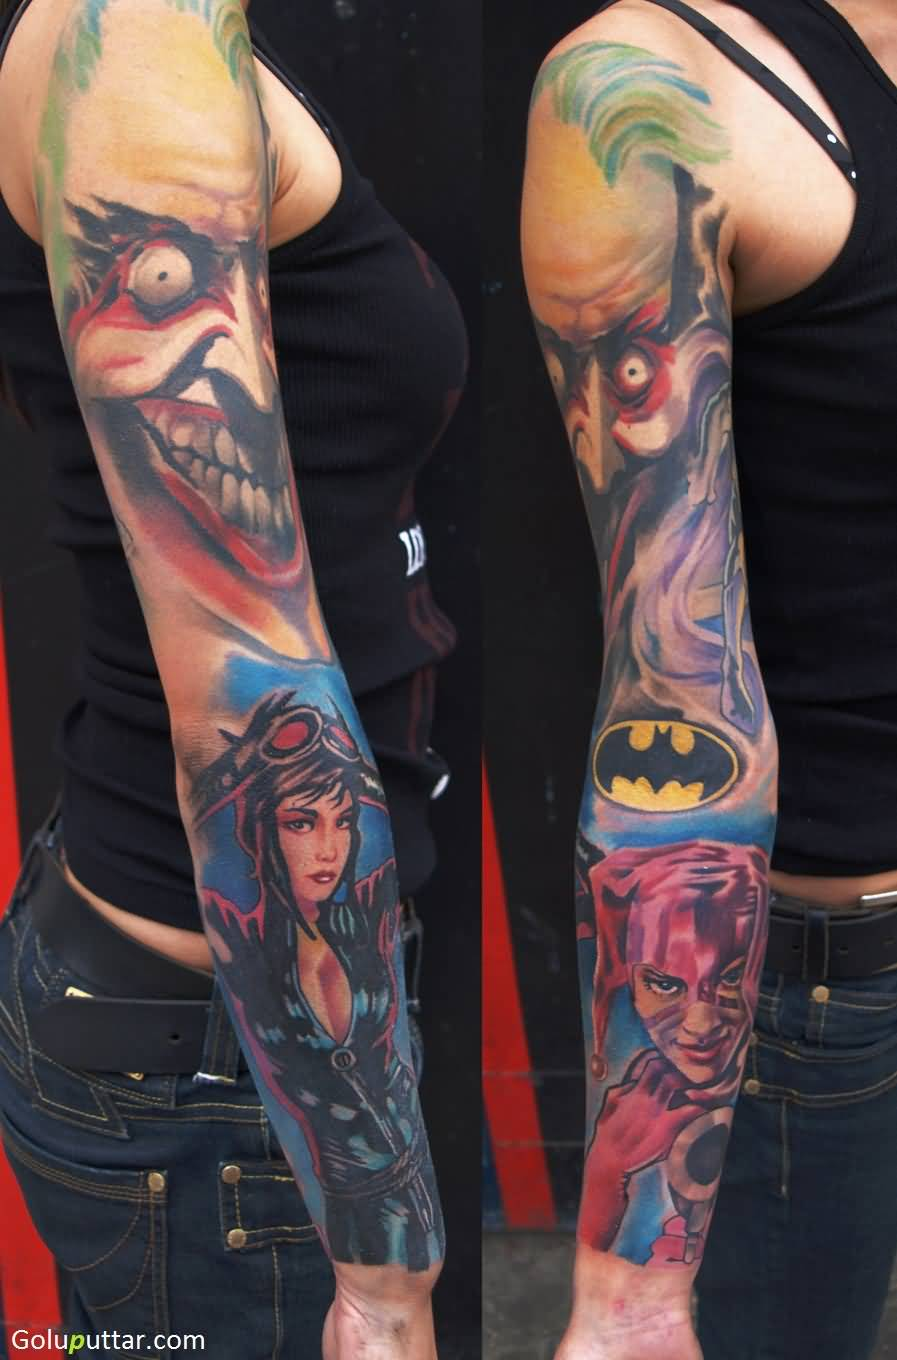 Amazing sleeve tattoo of animated joker photos and ideas for Arguments against tattoos